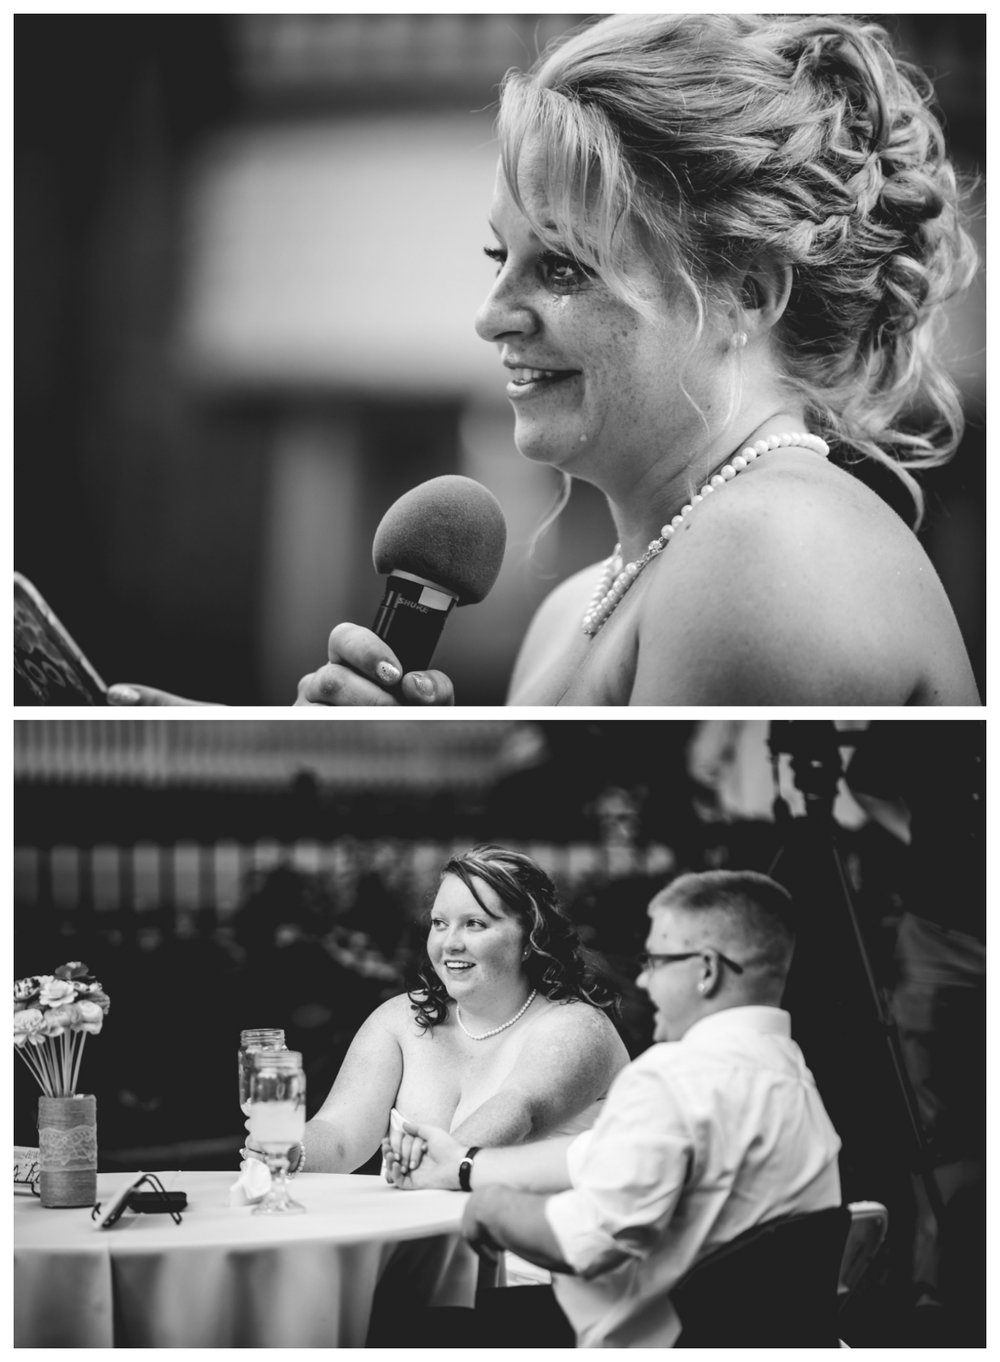 Wedding toasts given by the brides mom. Photographed by JMGant Photography.